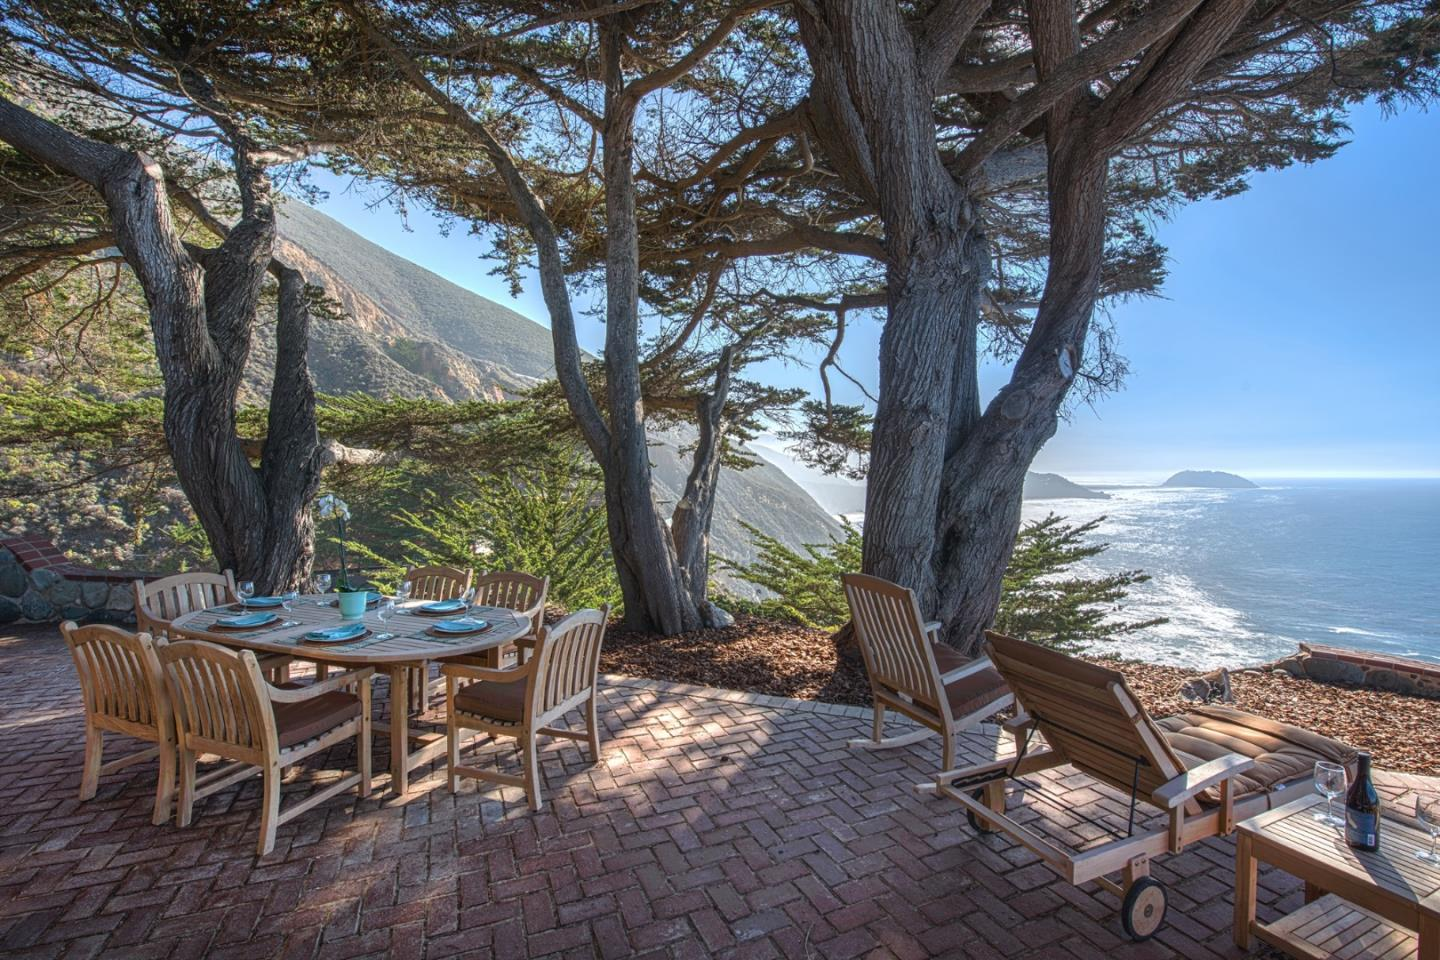 Single Family Home for Sale at 40990 Highway 1 Big Sur, California 93920 United States